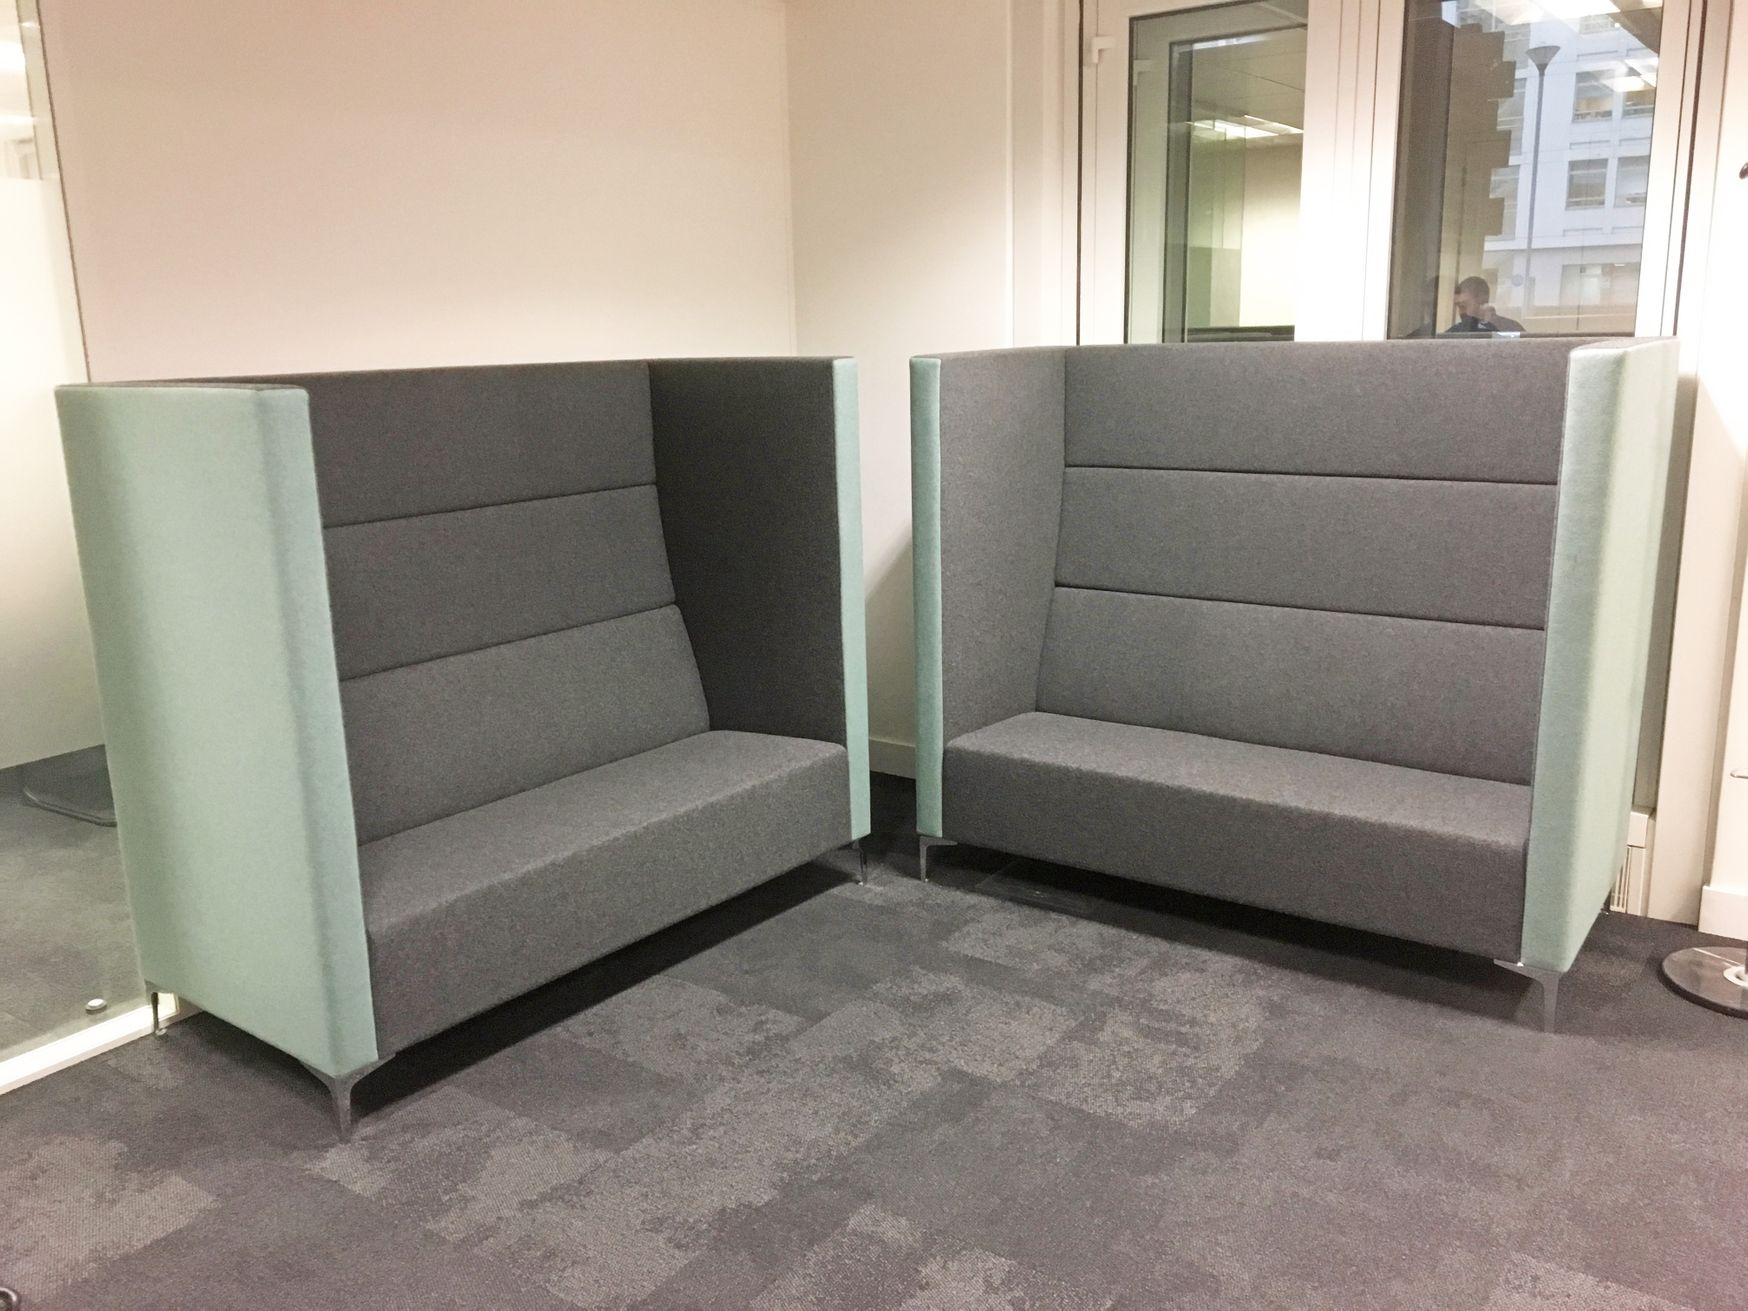 Further view of the Techo Cara Highline High Back Office Sofas shown in the previous photo